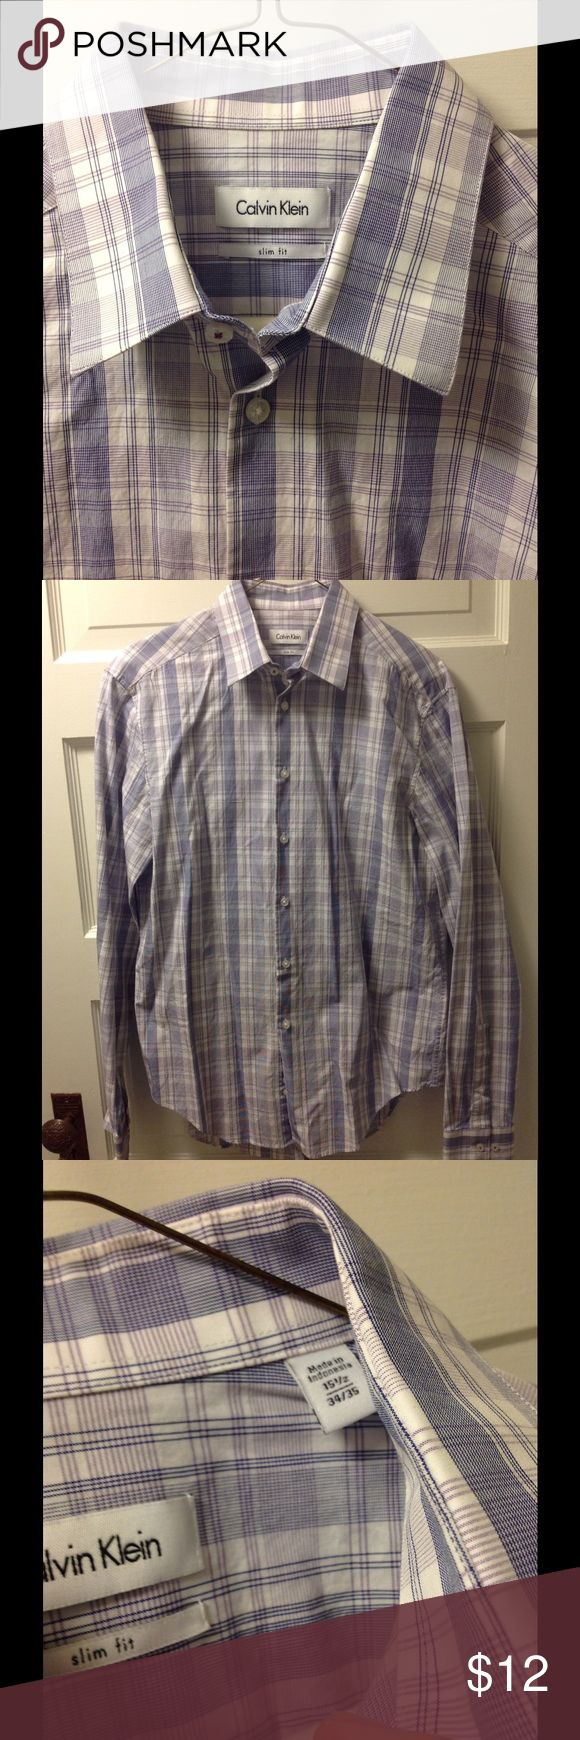 Calvin Klein dress shirt. Slim fit. Like new Slim fit dress shirt size 15.5 34/35. Worn one time, doesn't fit... like new condition 10/10 (only because I don't consider it new since I wore it once). Thanks for looking! Calvin Klein Shirts Dress Shirts